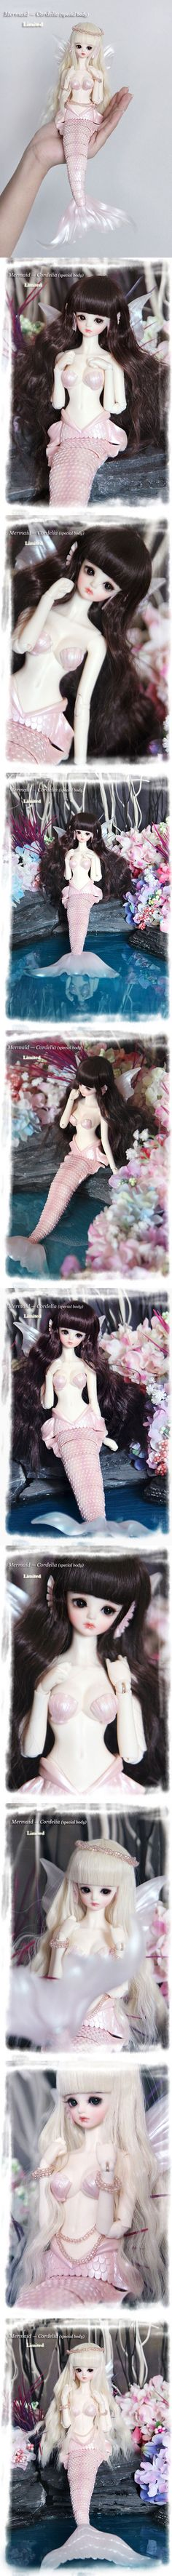 BJD Mermaid-Cordelia【special body】 Girl Ball-jointed Doll_Limited dolls_ASLEEP EIDOLON_DOLL_Ball Jointed Dolls (BJD) company-Legenddoll